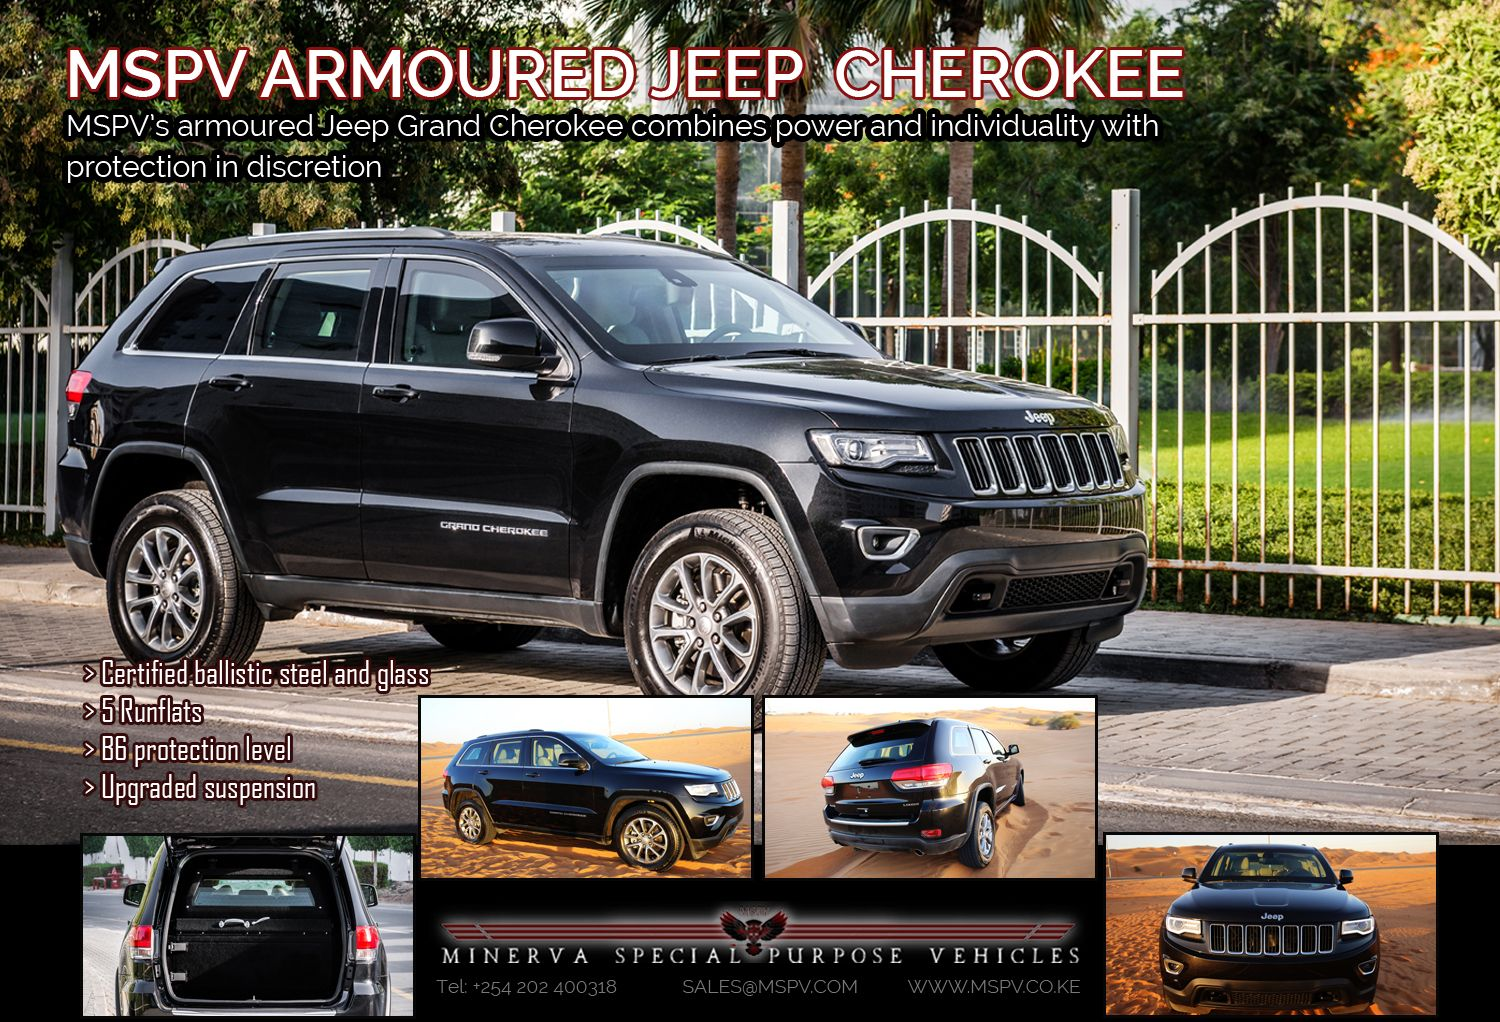 Armoured Jeep Grand Cherokee Mspv Armoured Vehicles Pinterest